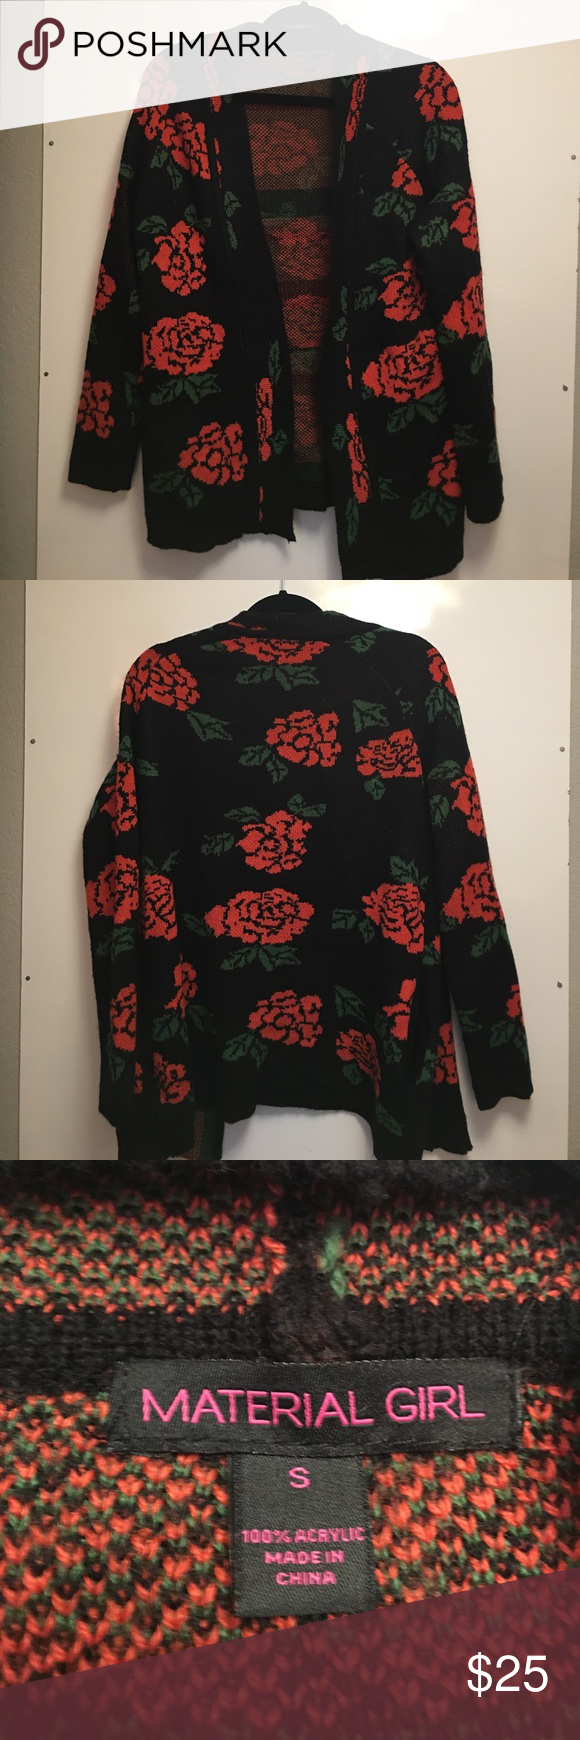 Free People Flower Power Cardigan Dupe ***not FREE PEOPLE*** Pattern dupe of Free People Flower Power Cardigan. From a brand sold in Dillard's. Worn less than 3 times.... great condition! Free People Sweaters Cardigans